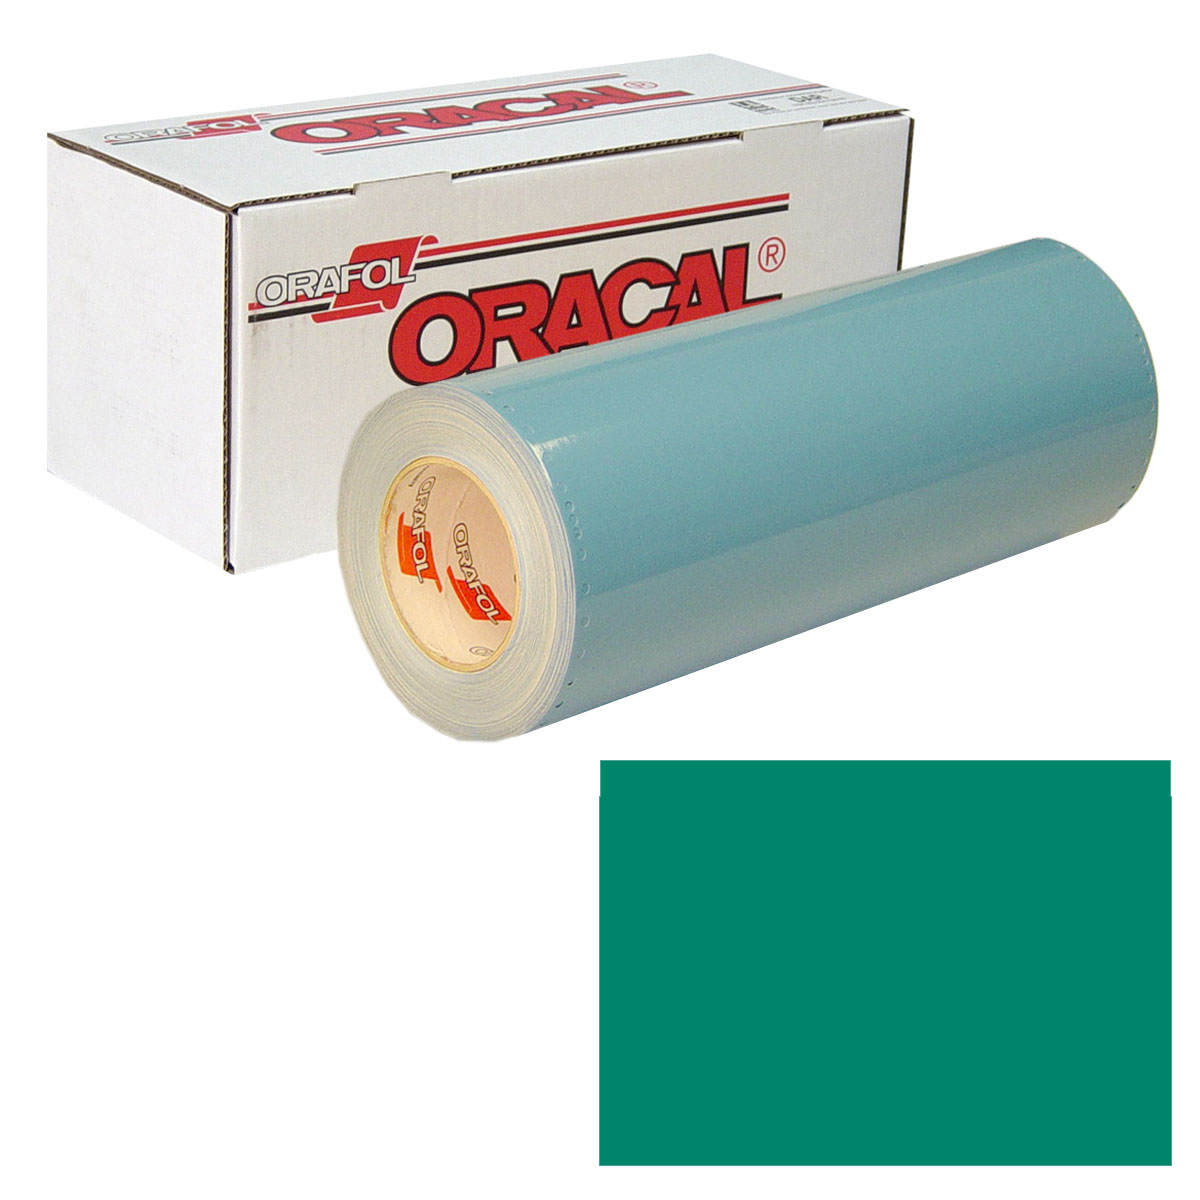 ORACAL 751 Unp 24in X 10yd 607 Turquoise Gree